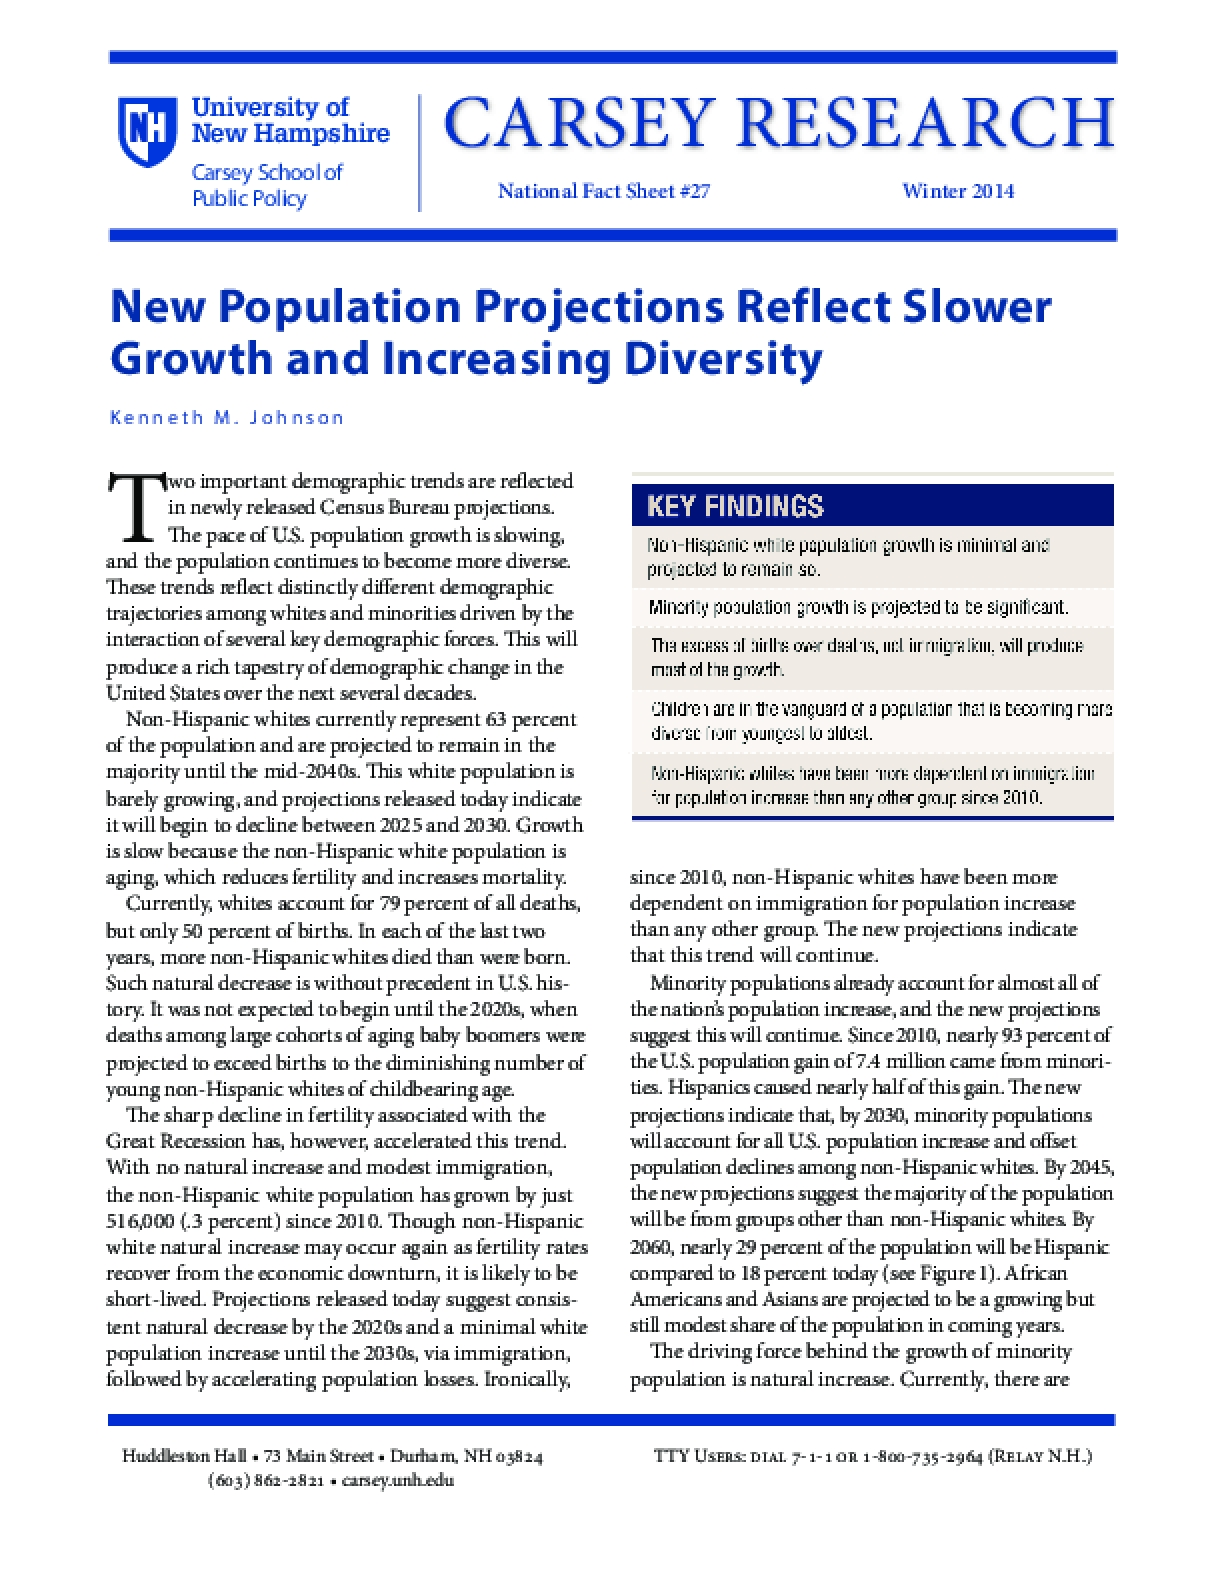 New Population Projections Reflect Slower Growth and Increasing Diversity